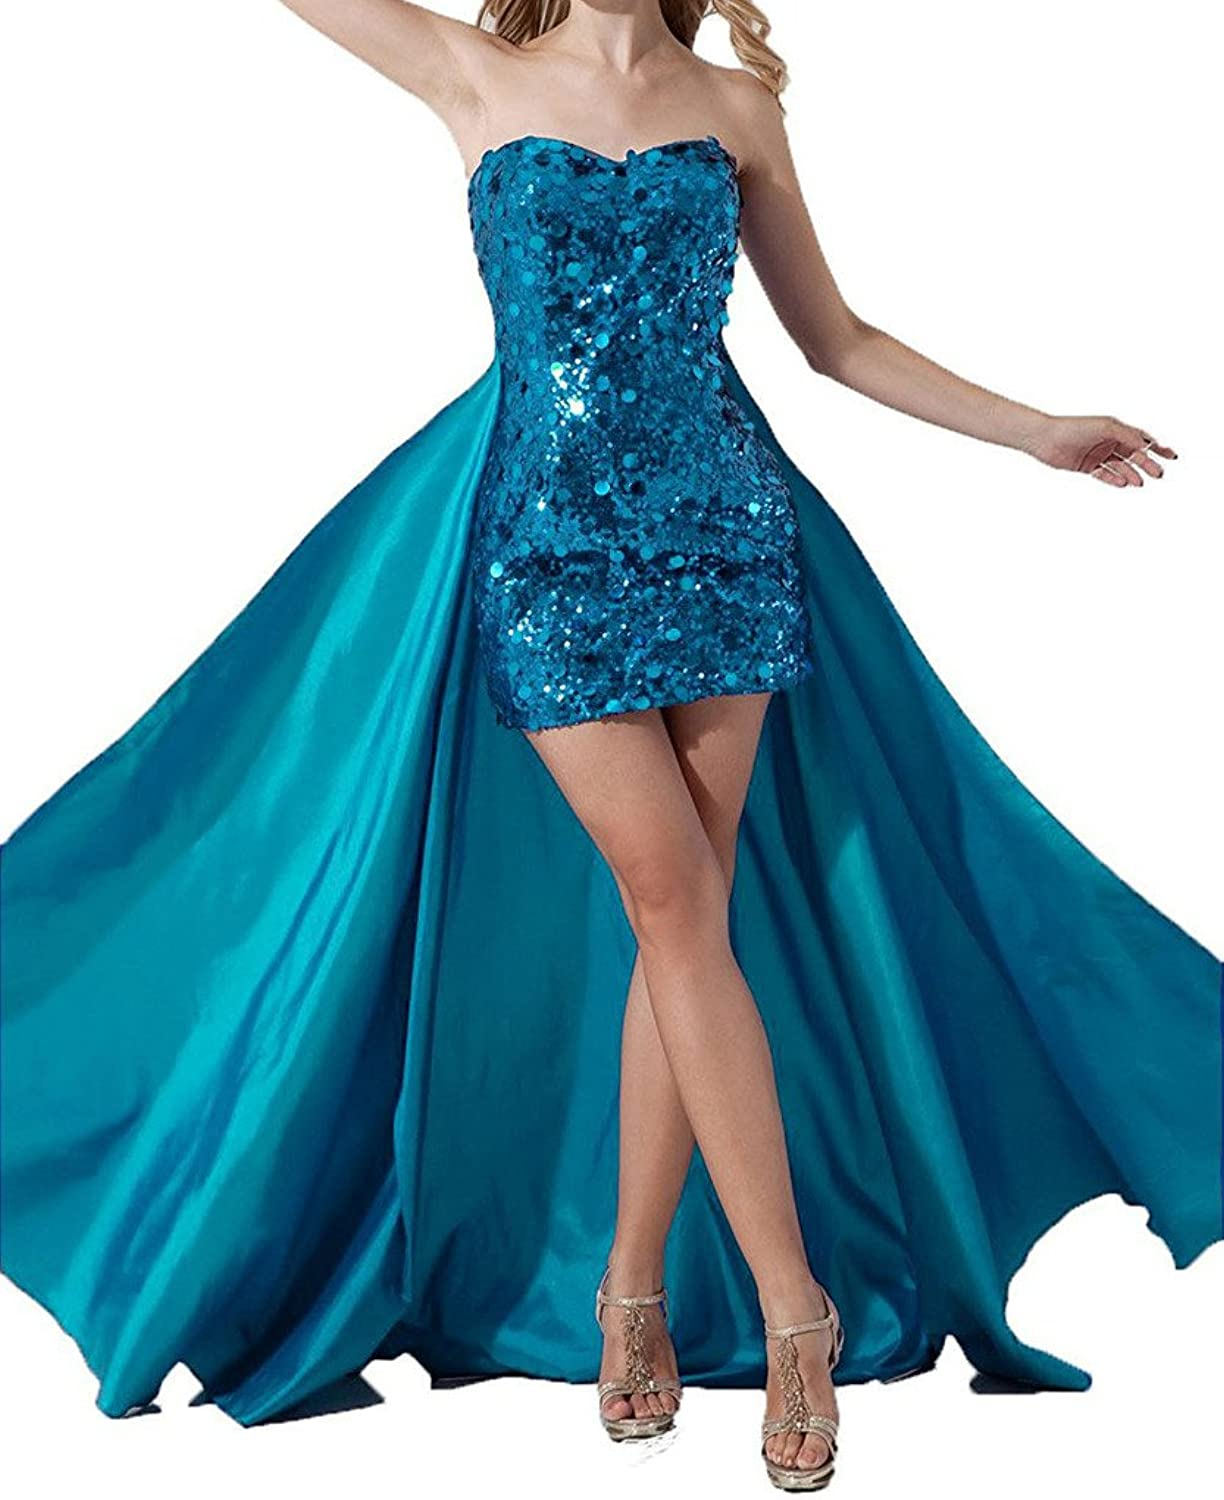 ASBridal Women's Short Cocktail Sequin Prom Party Dress with Detachable Skirt